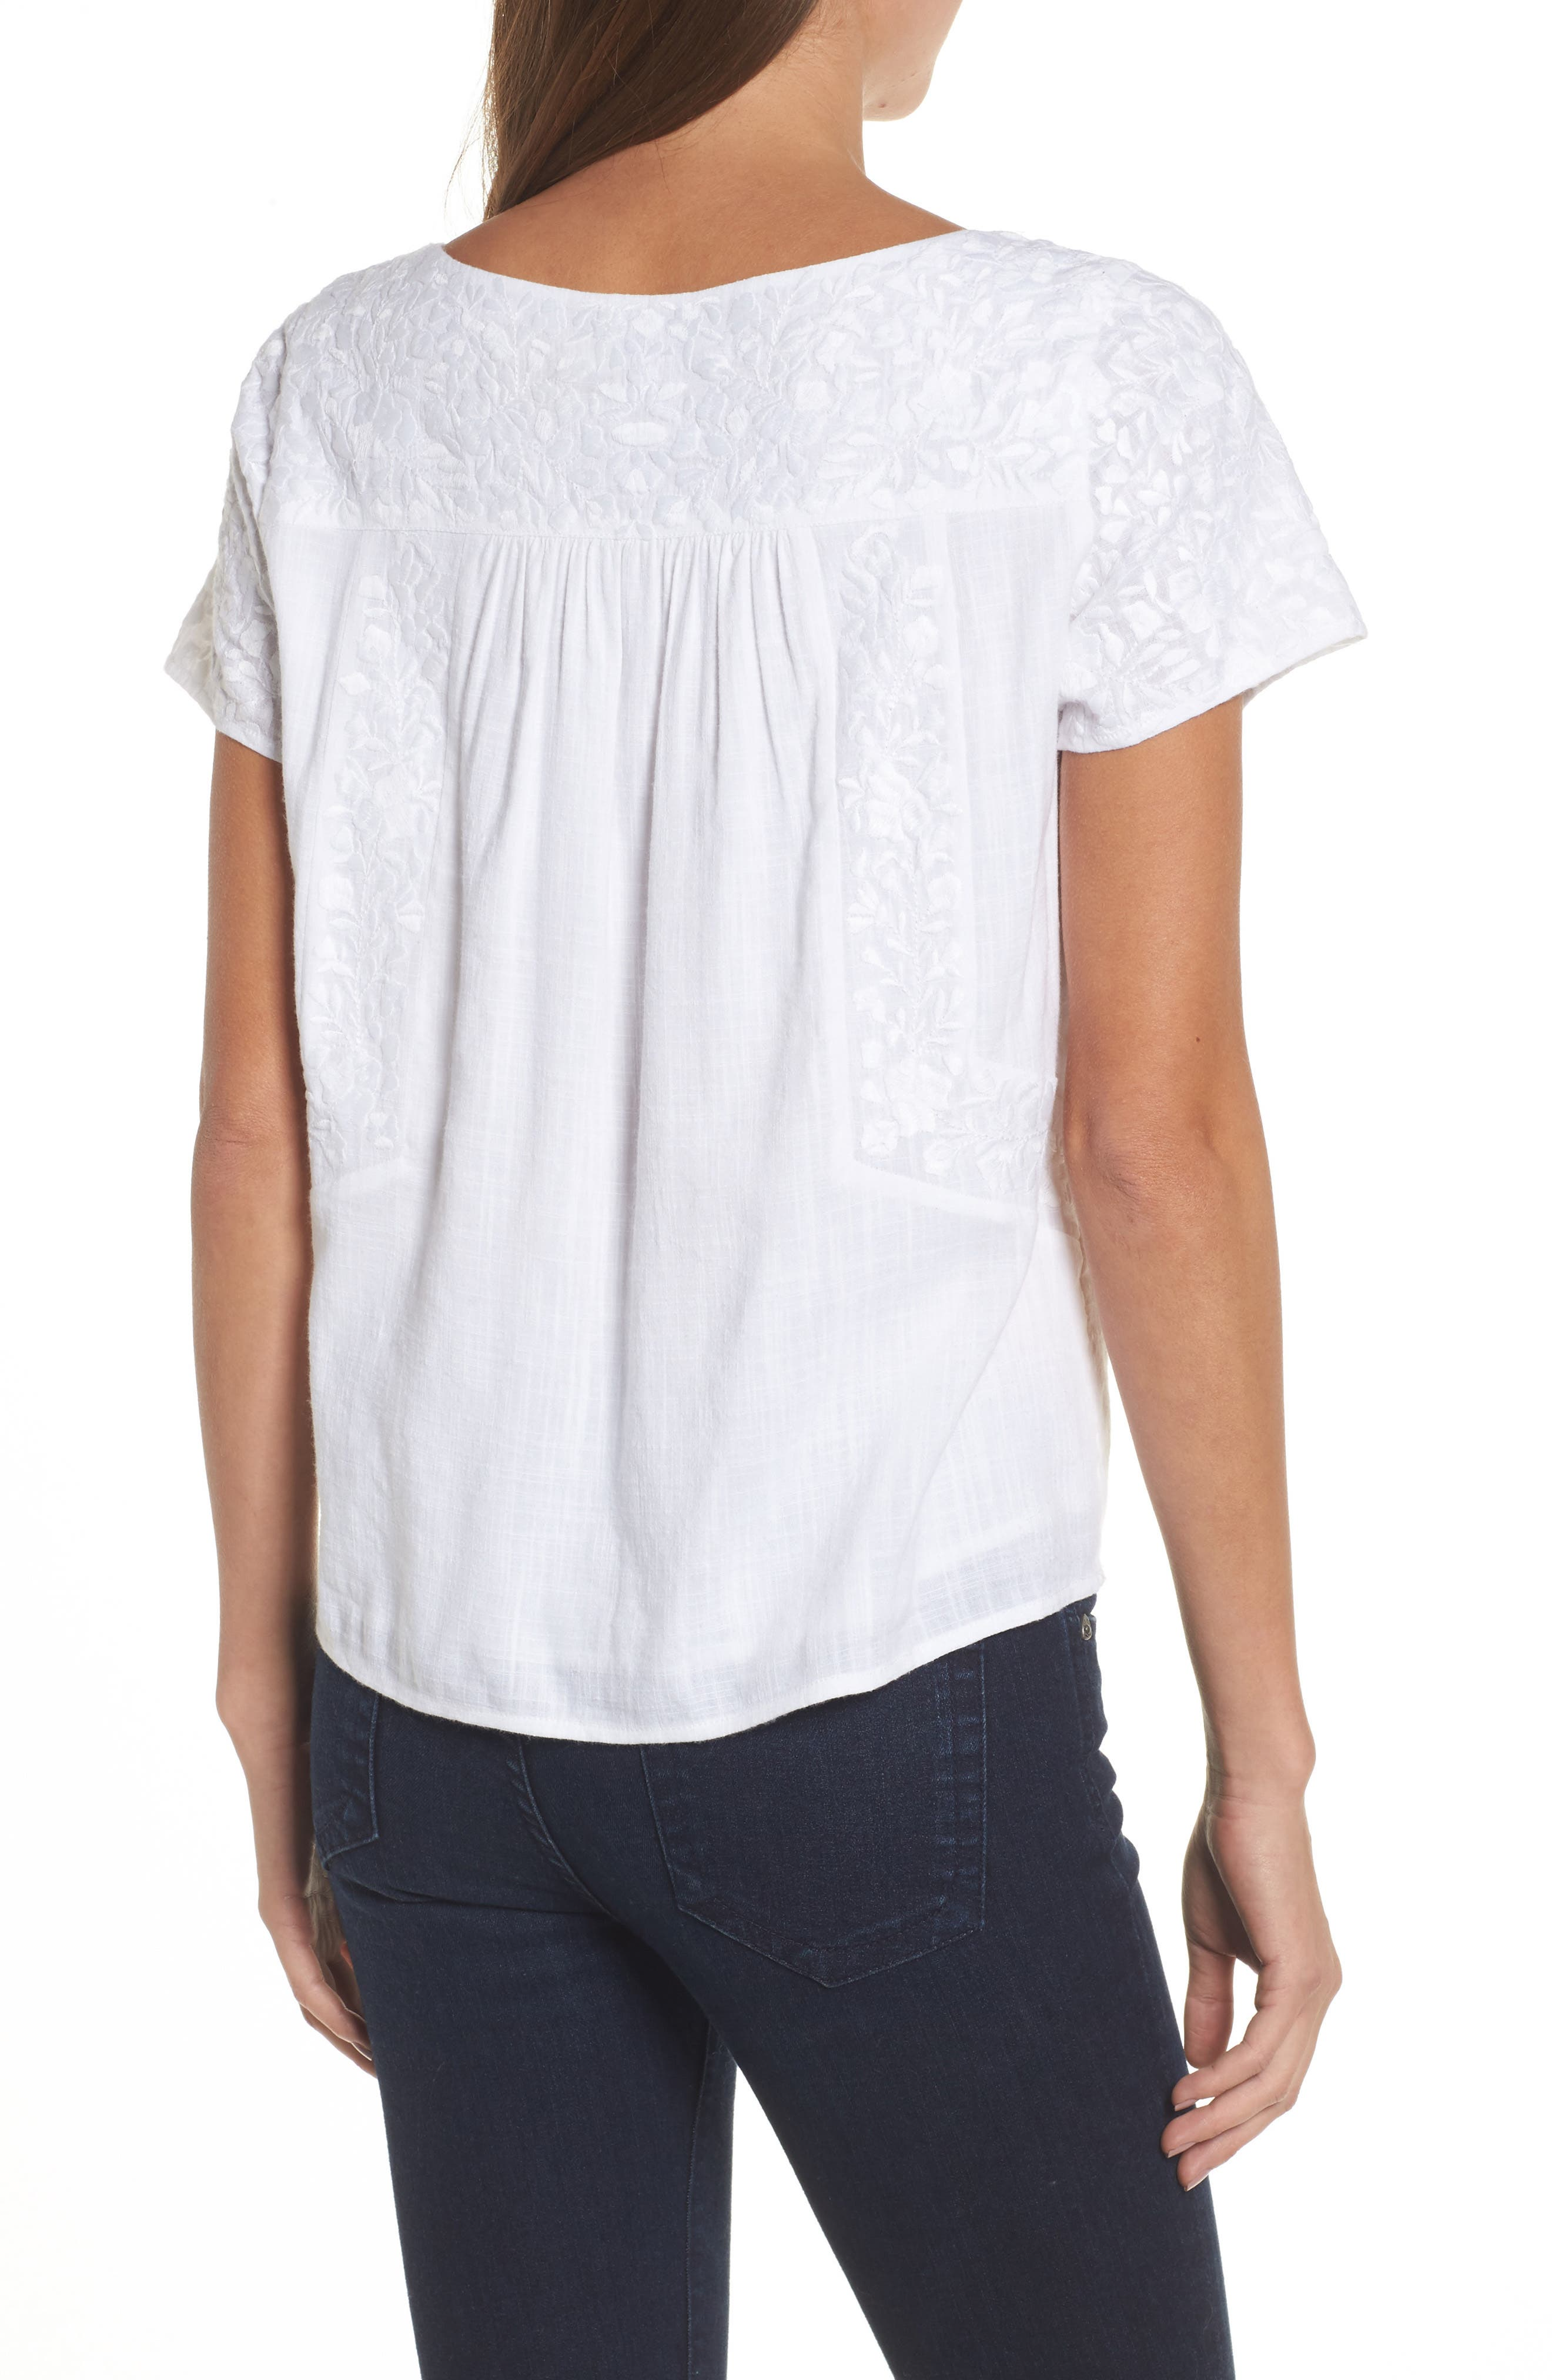 Monstera Linear Embroidered Top,                             Alternate thumbnail 2, color,                             White Cap